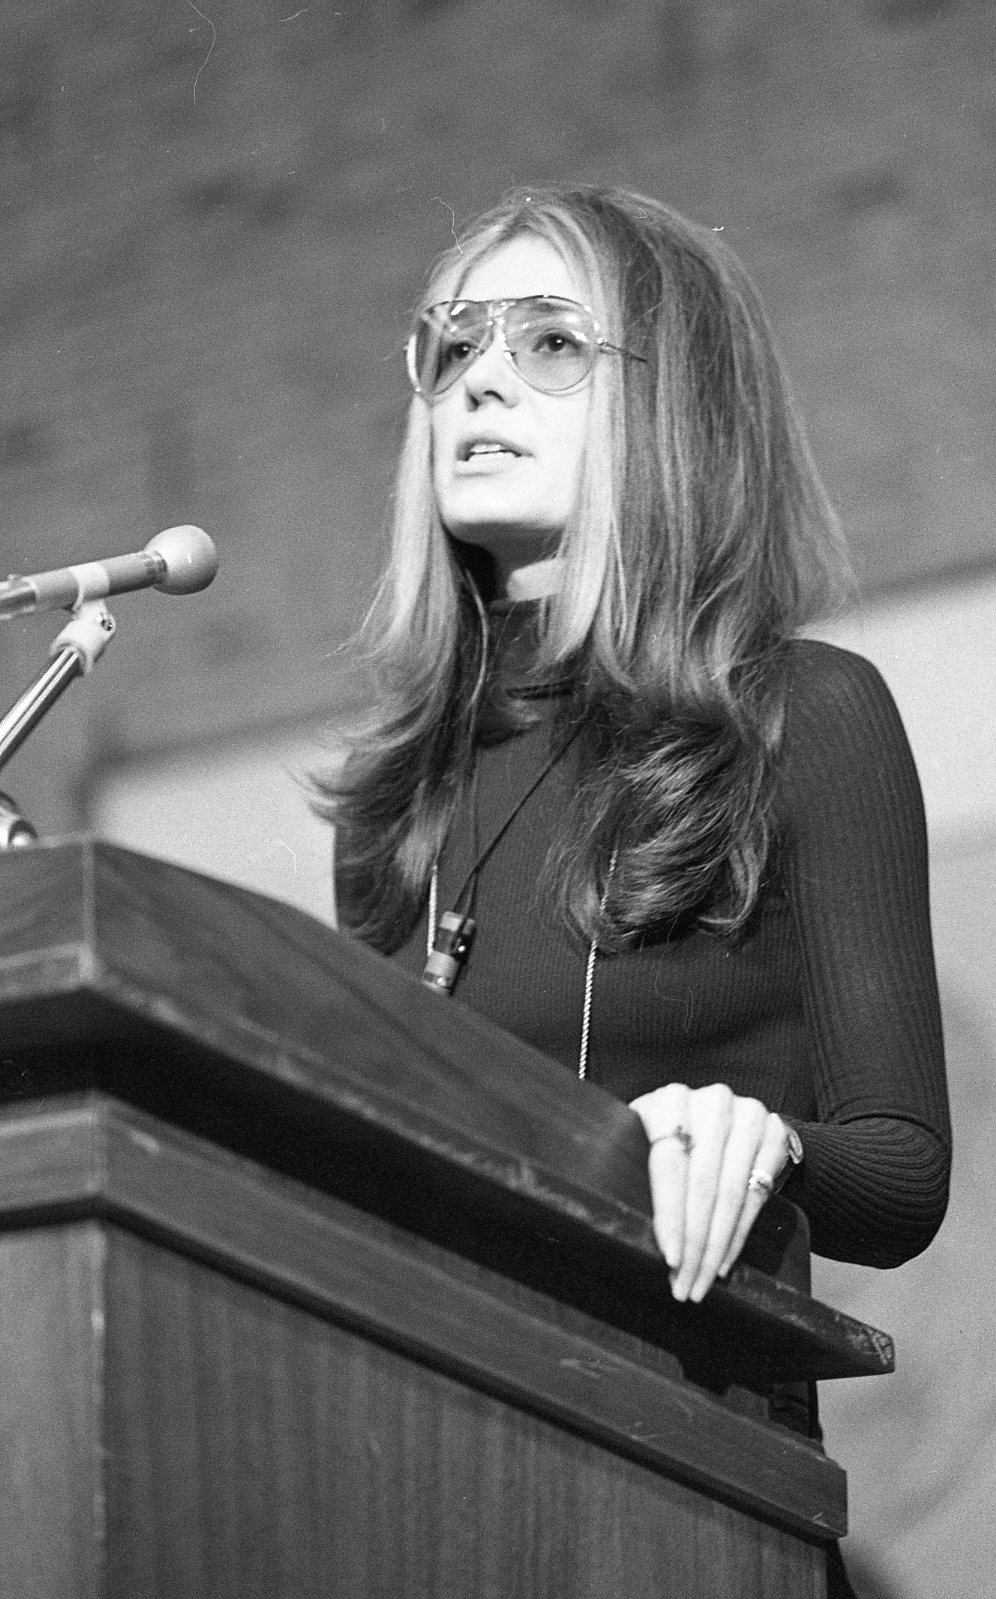 Gloria Steinem speaking at Wright State University on January 26, 1972 (University Archives) (click to enlarge)